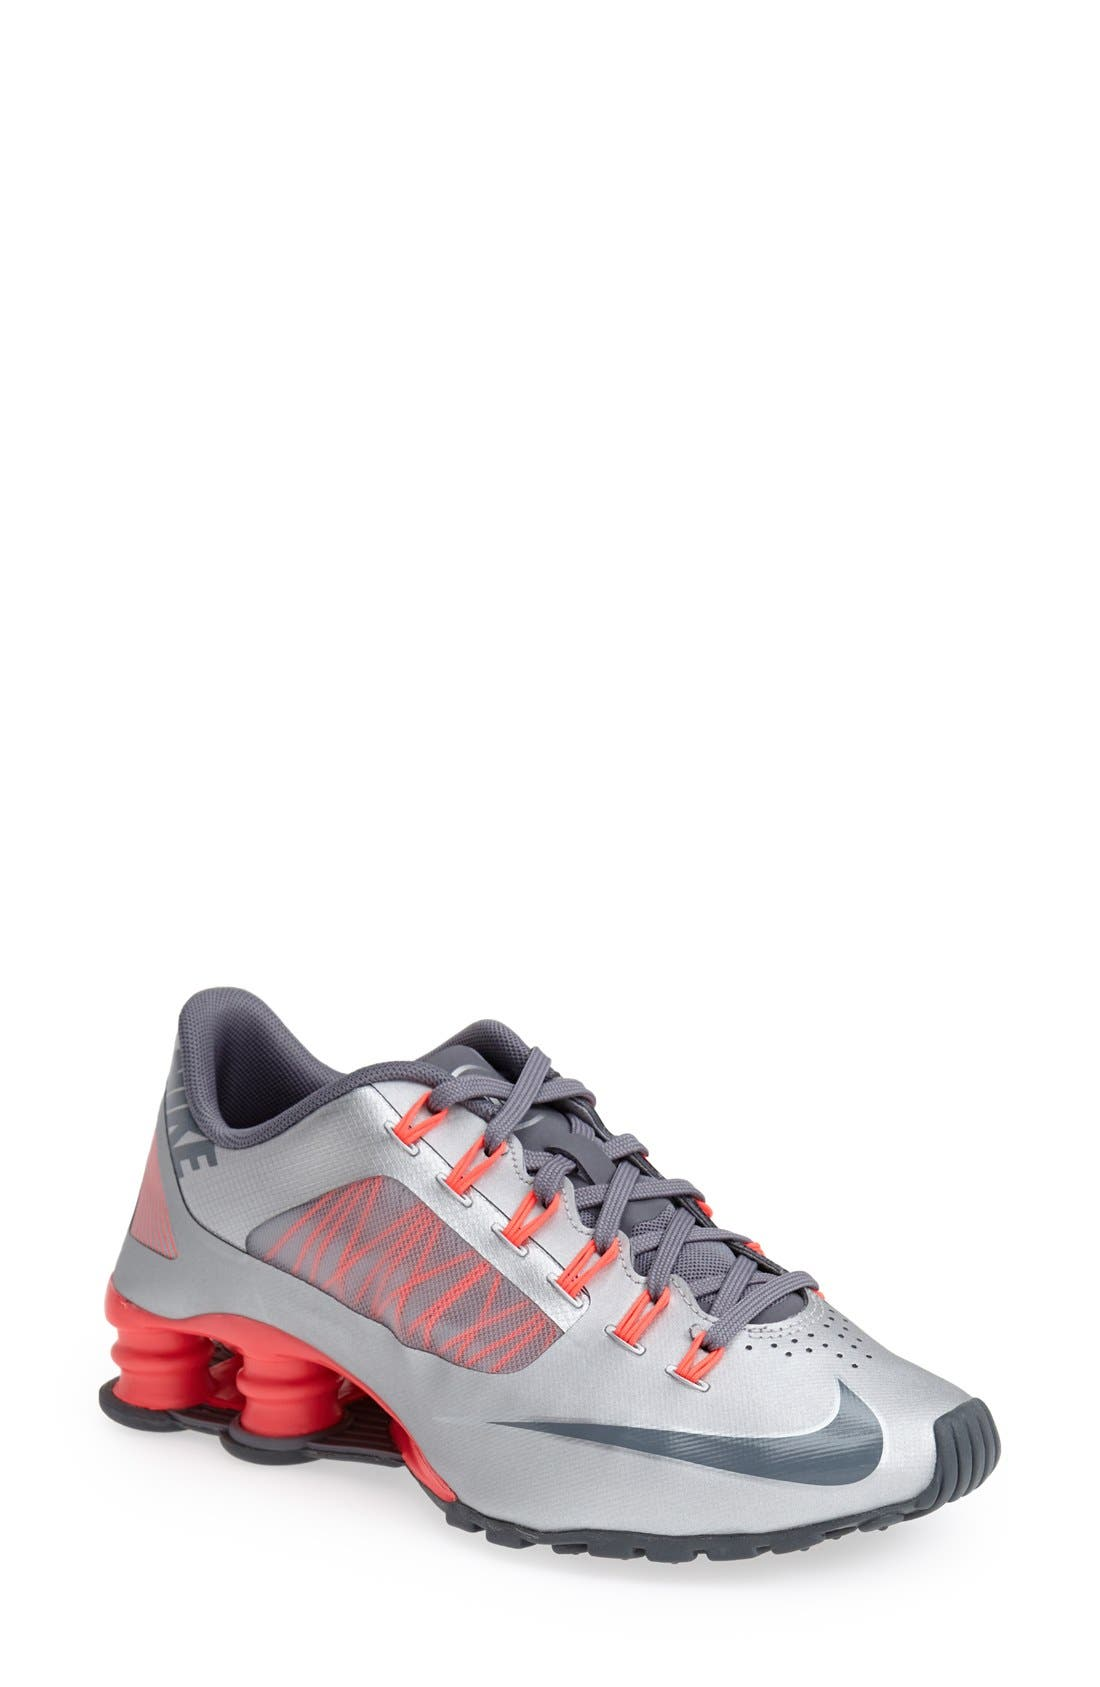 'Shox Superfly R4' Running Shoe, Main, color, 020